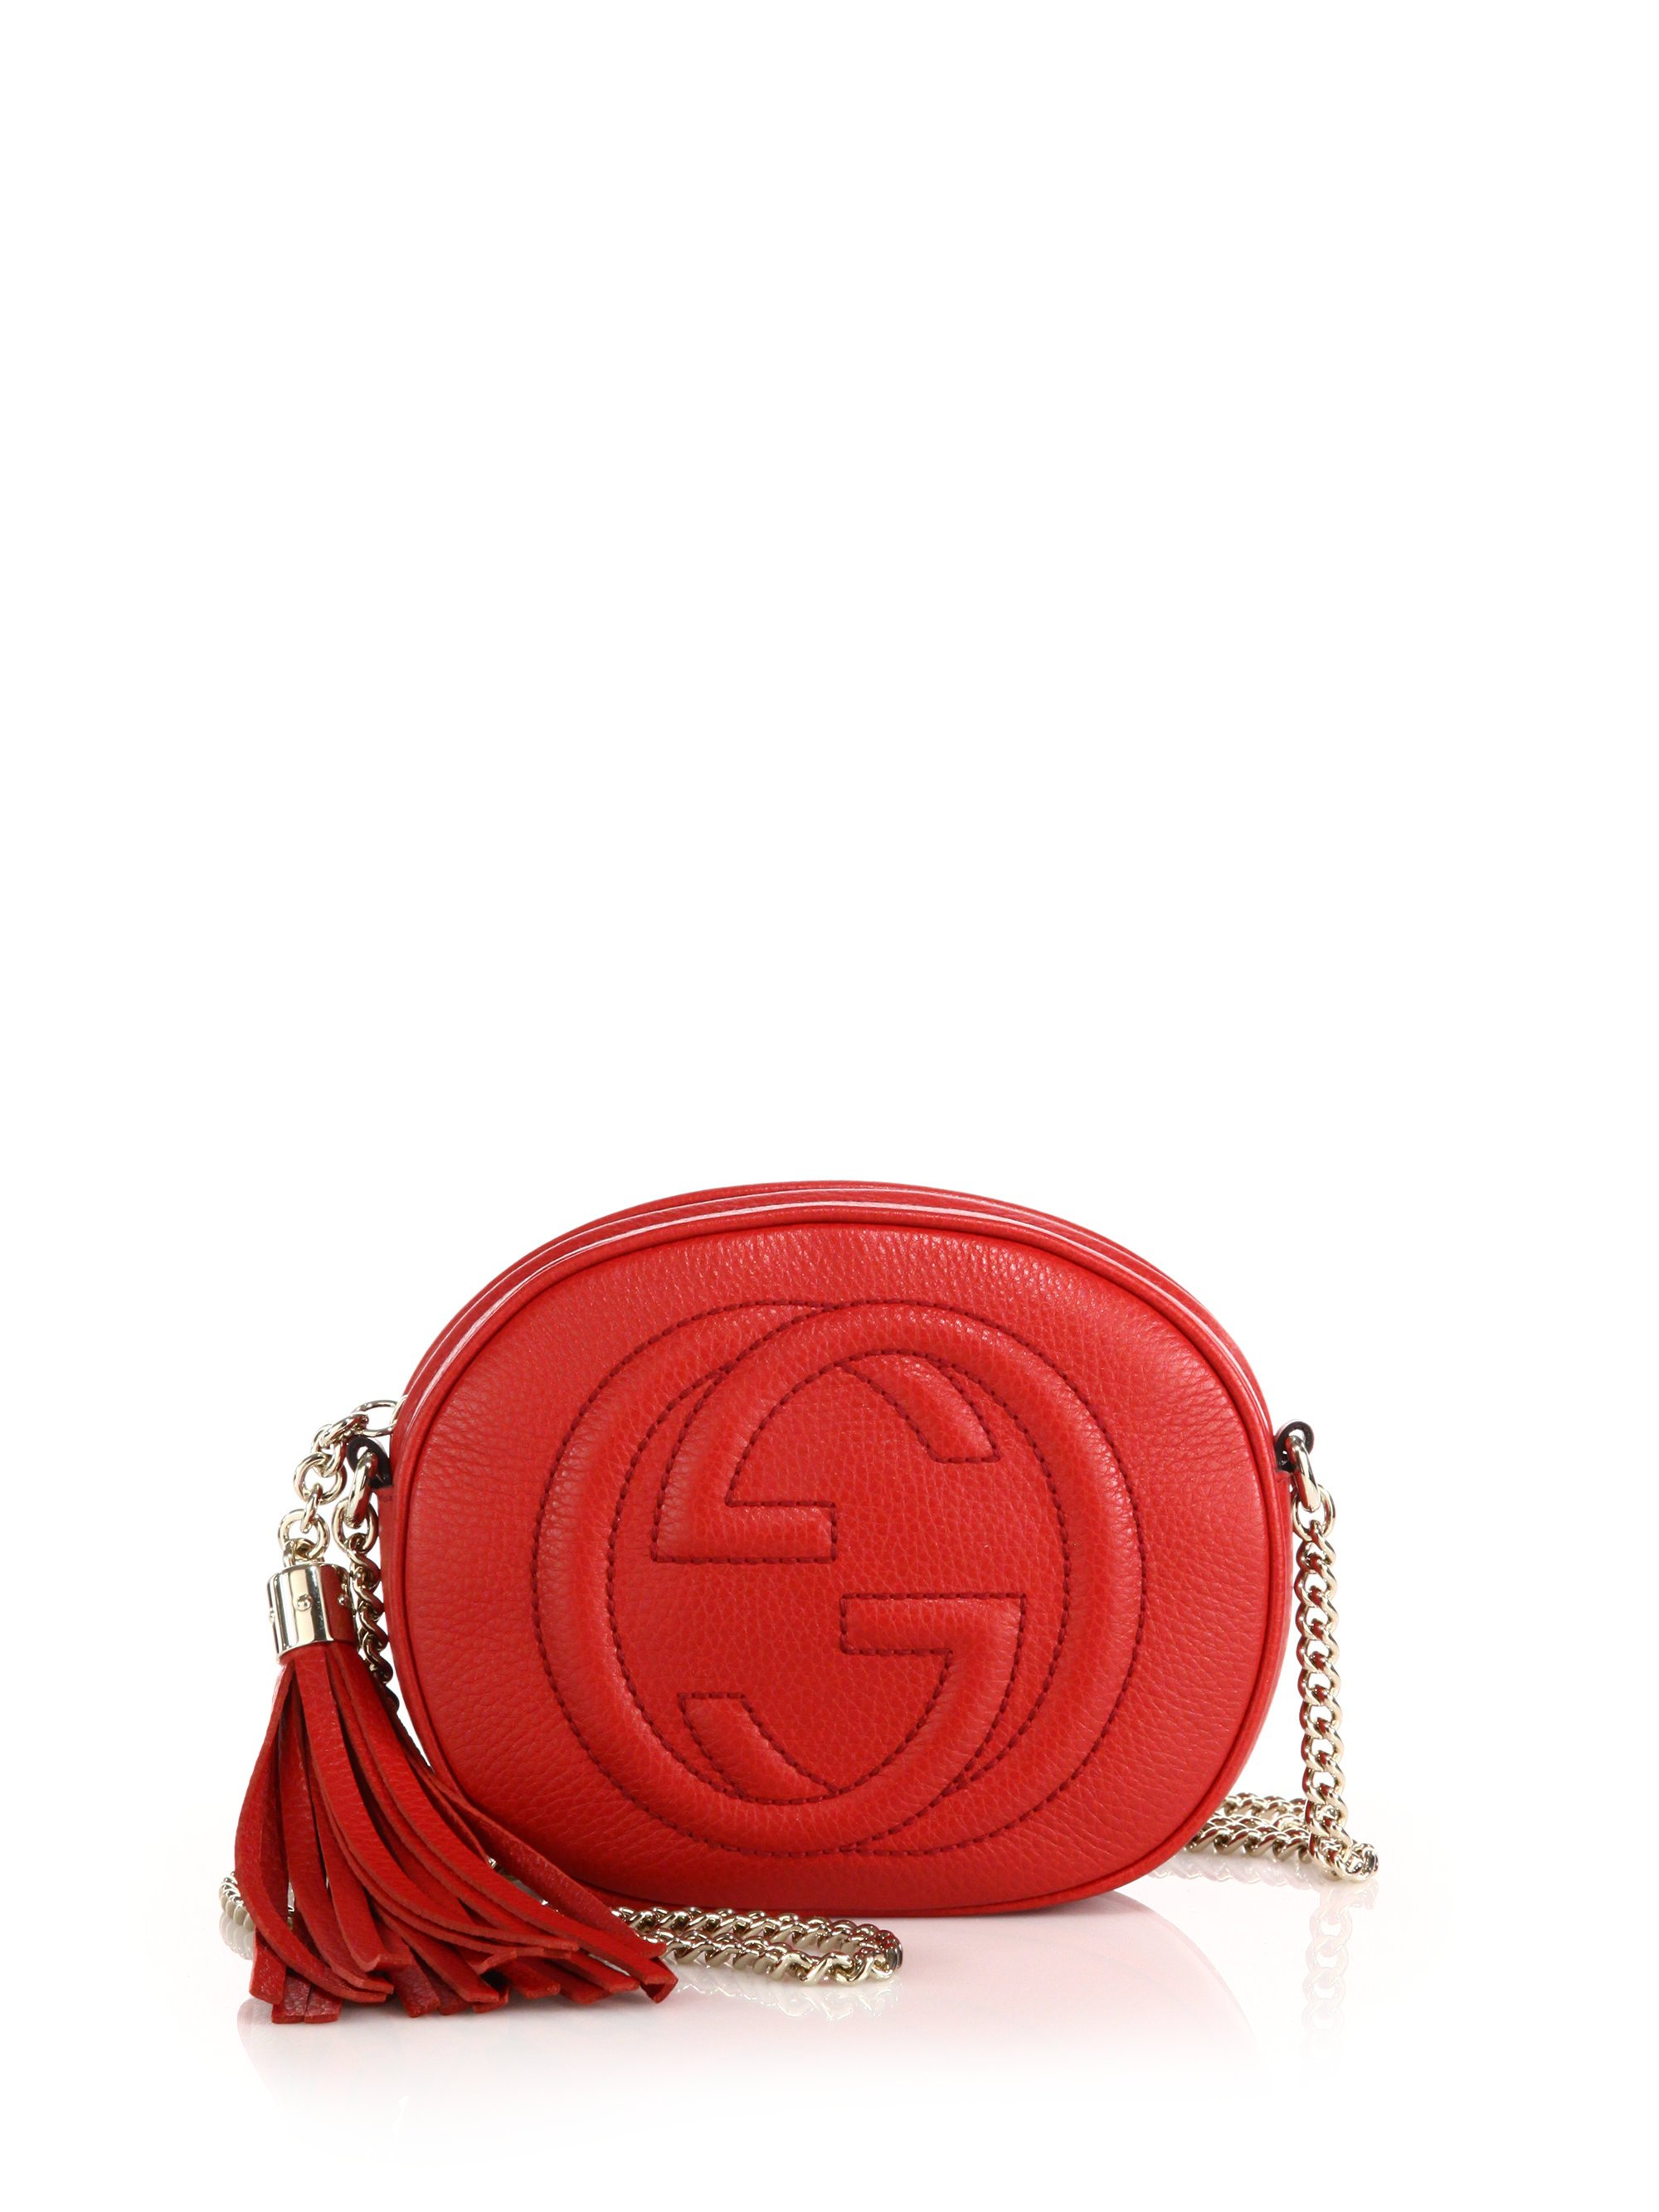 3bc5516334bef6 Gallery. Previously sold at: Saks Fifth Avenue · Women's Gucci Soho Bag